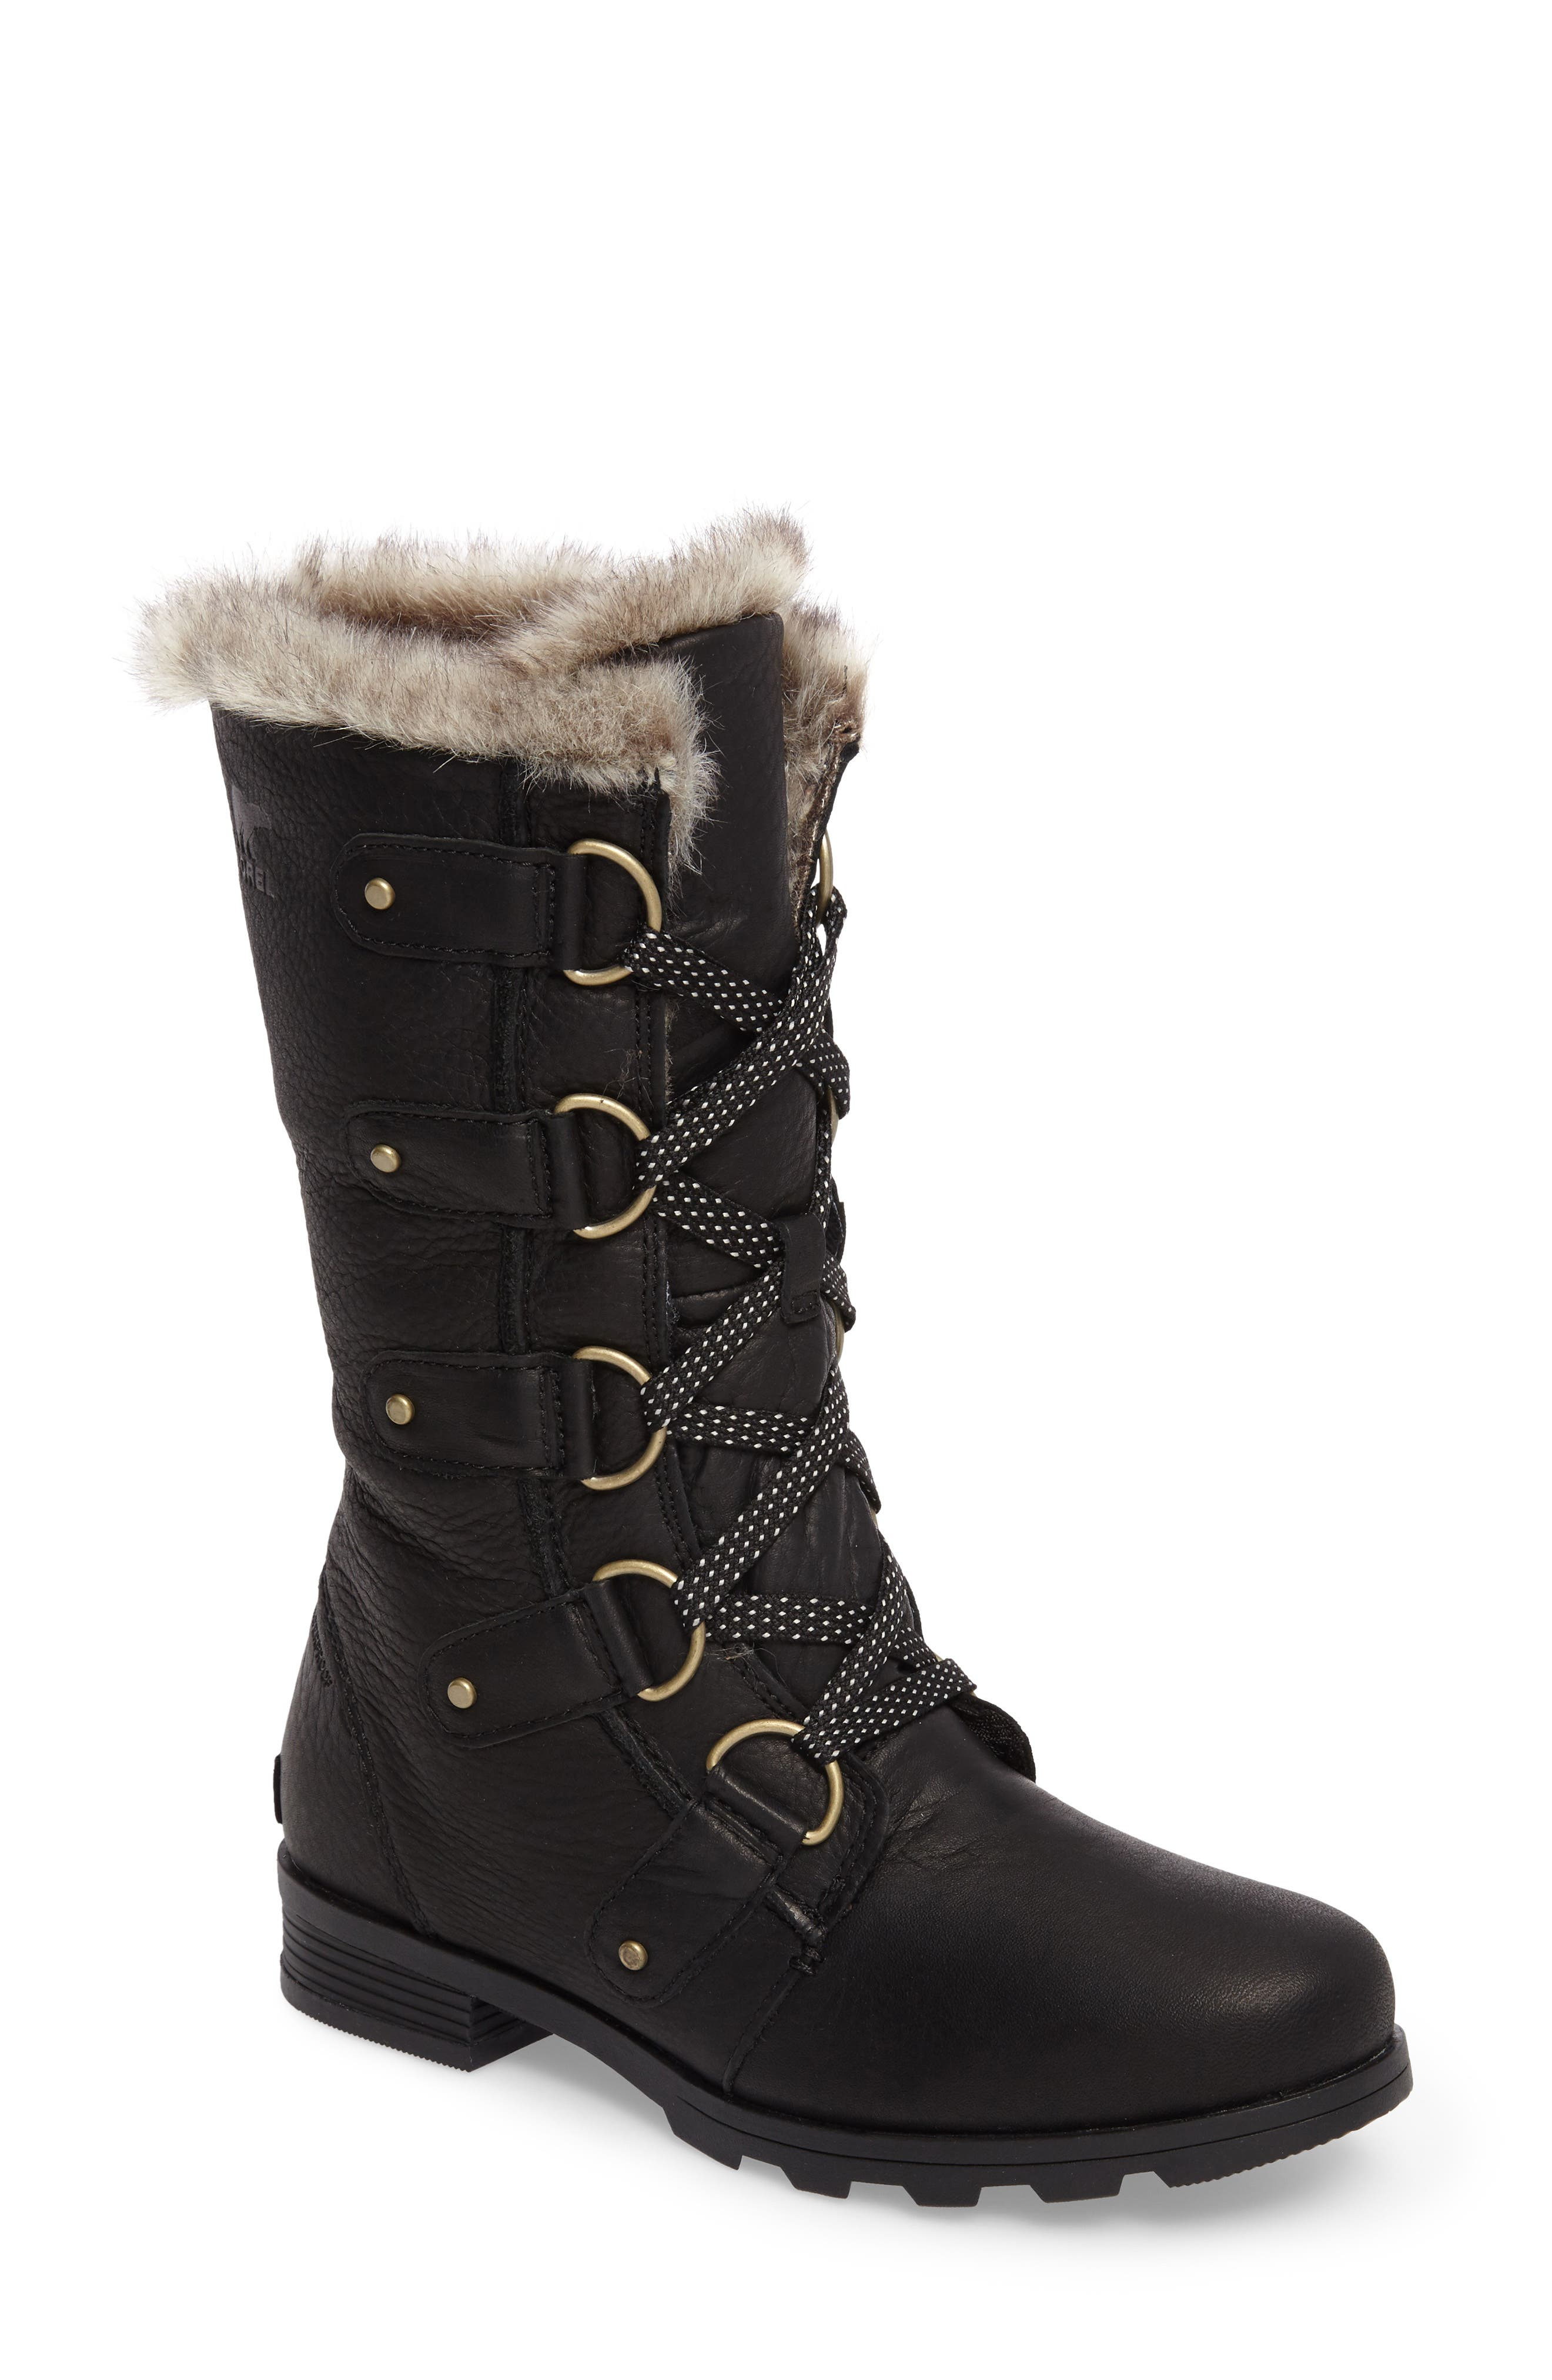 Alternate Image 1 Selected - SOREL Emelie Waterproof Lace Up Boot with Faux Fur Trim (Women)